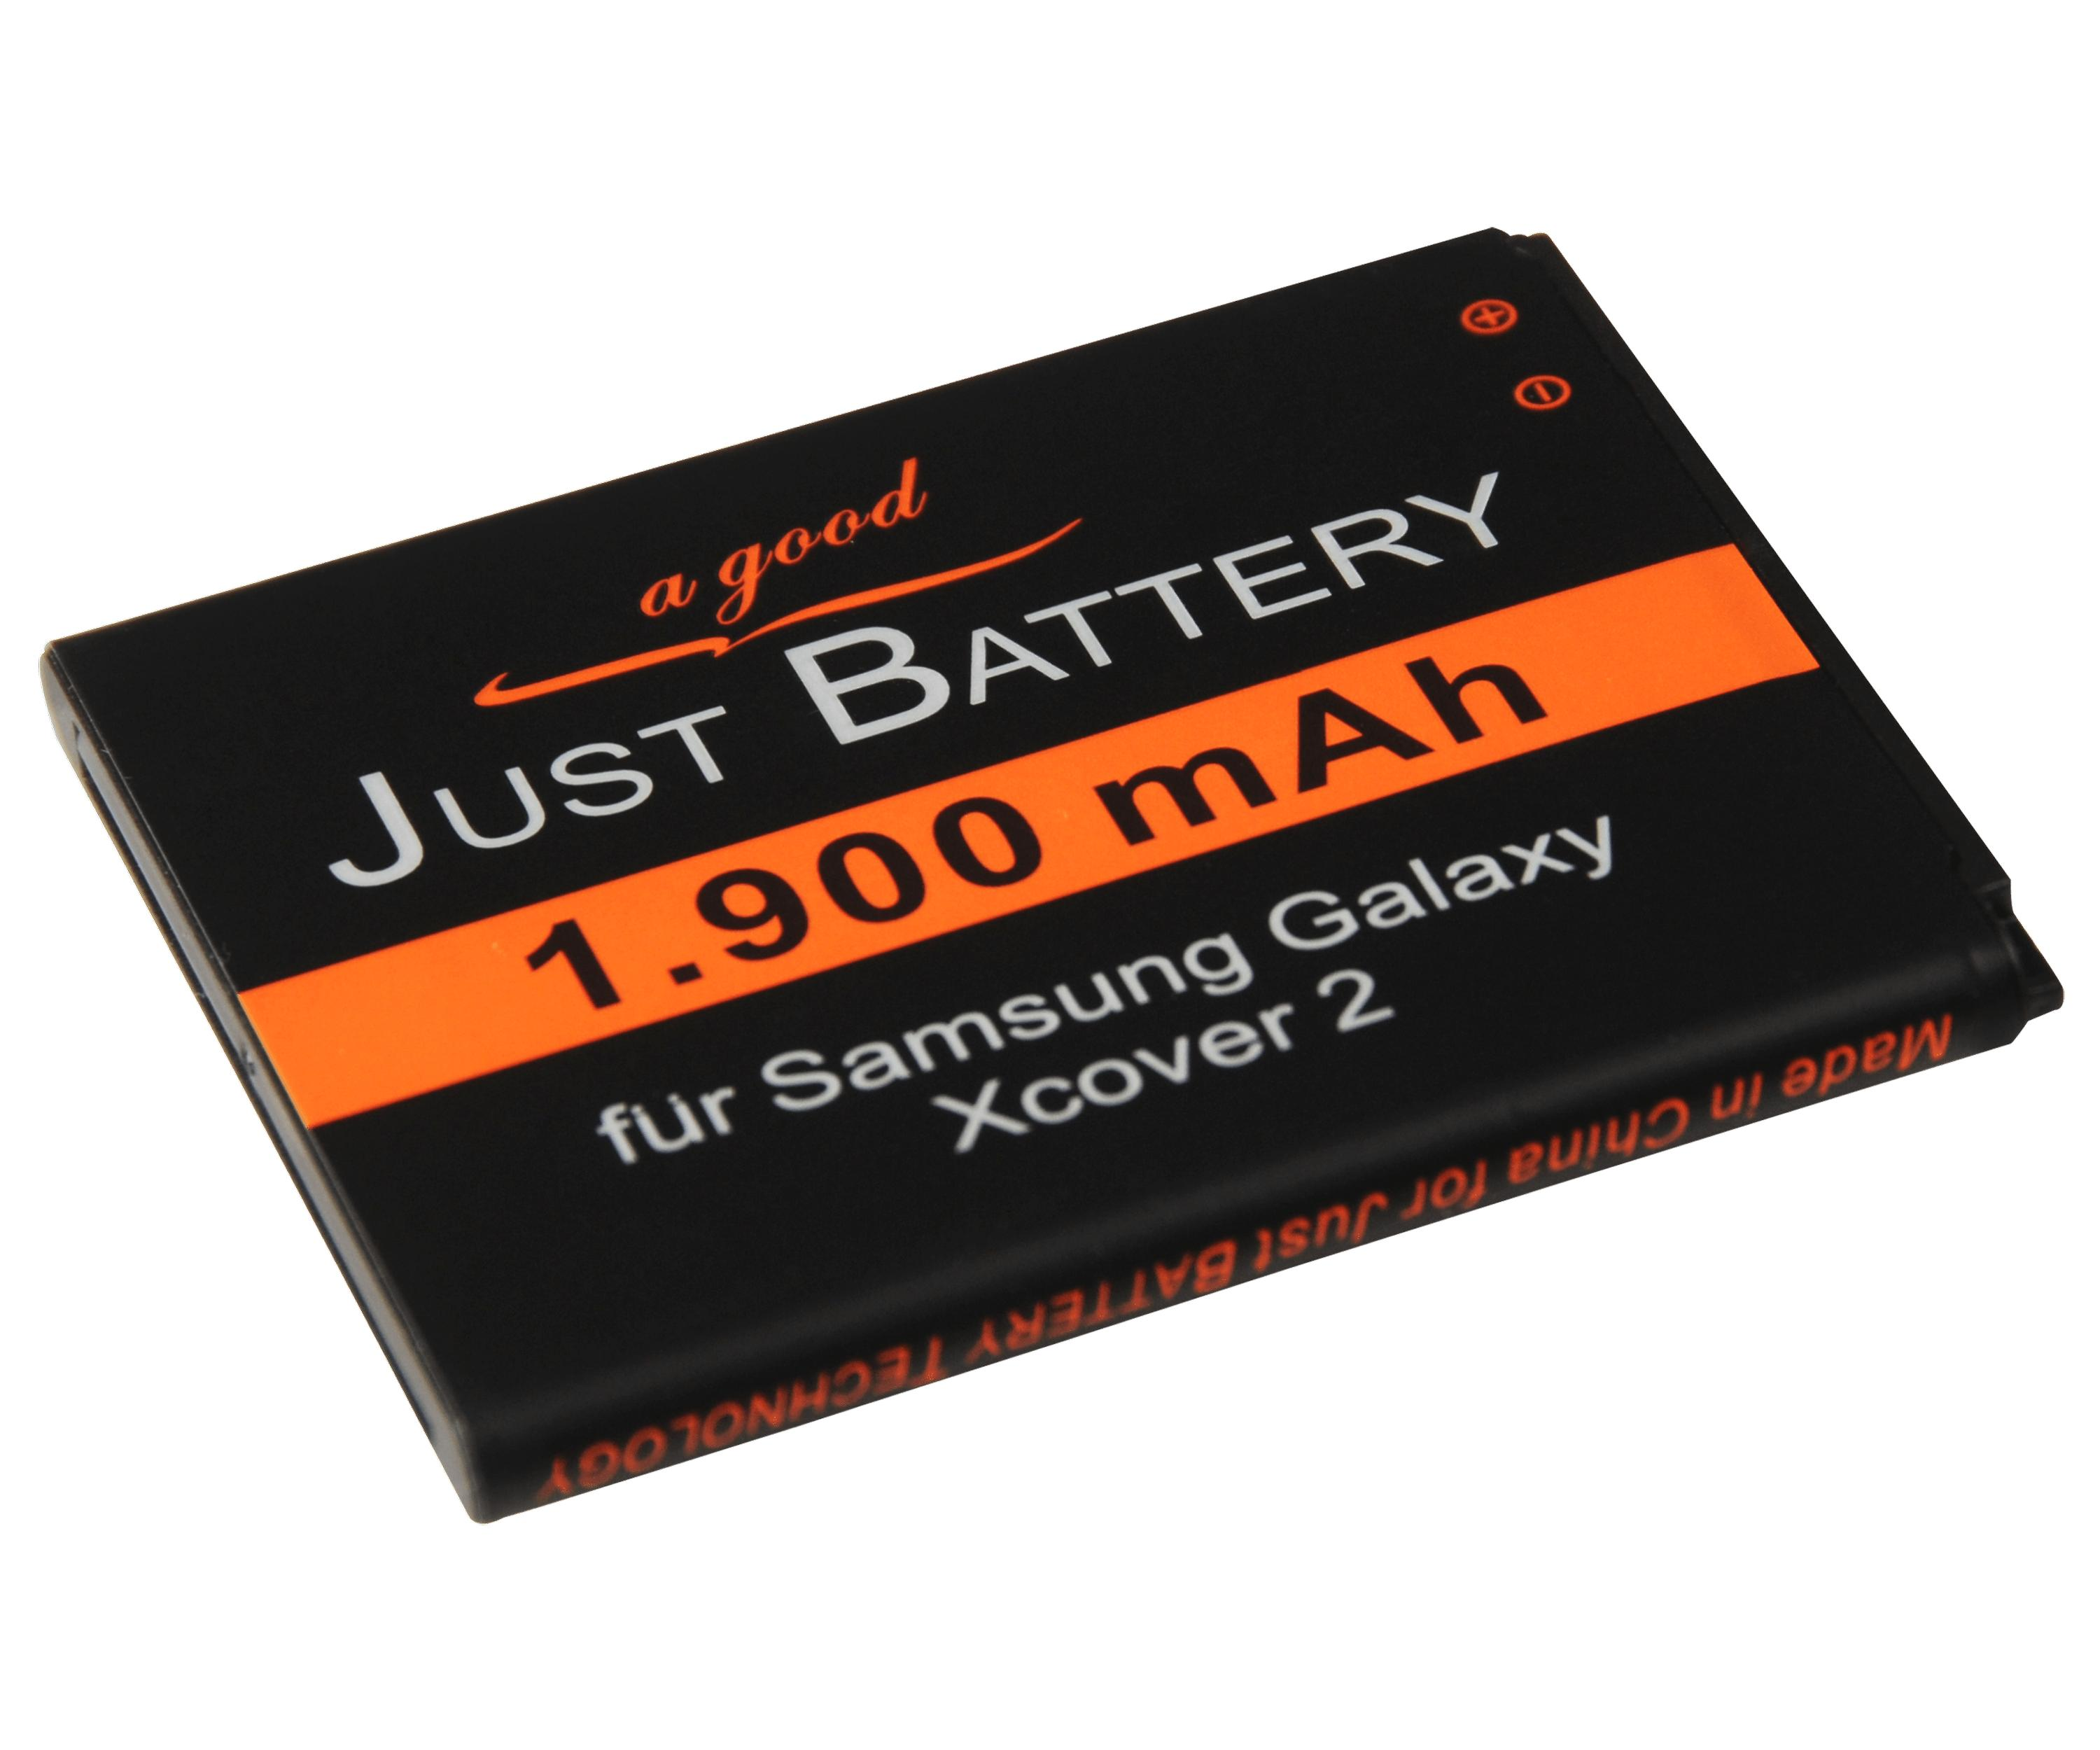 Battery for Samsung Galaxy reverb SPH-M950